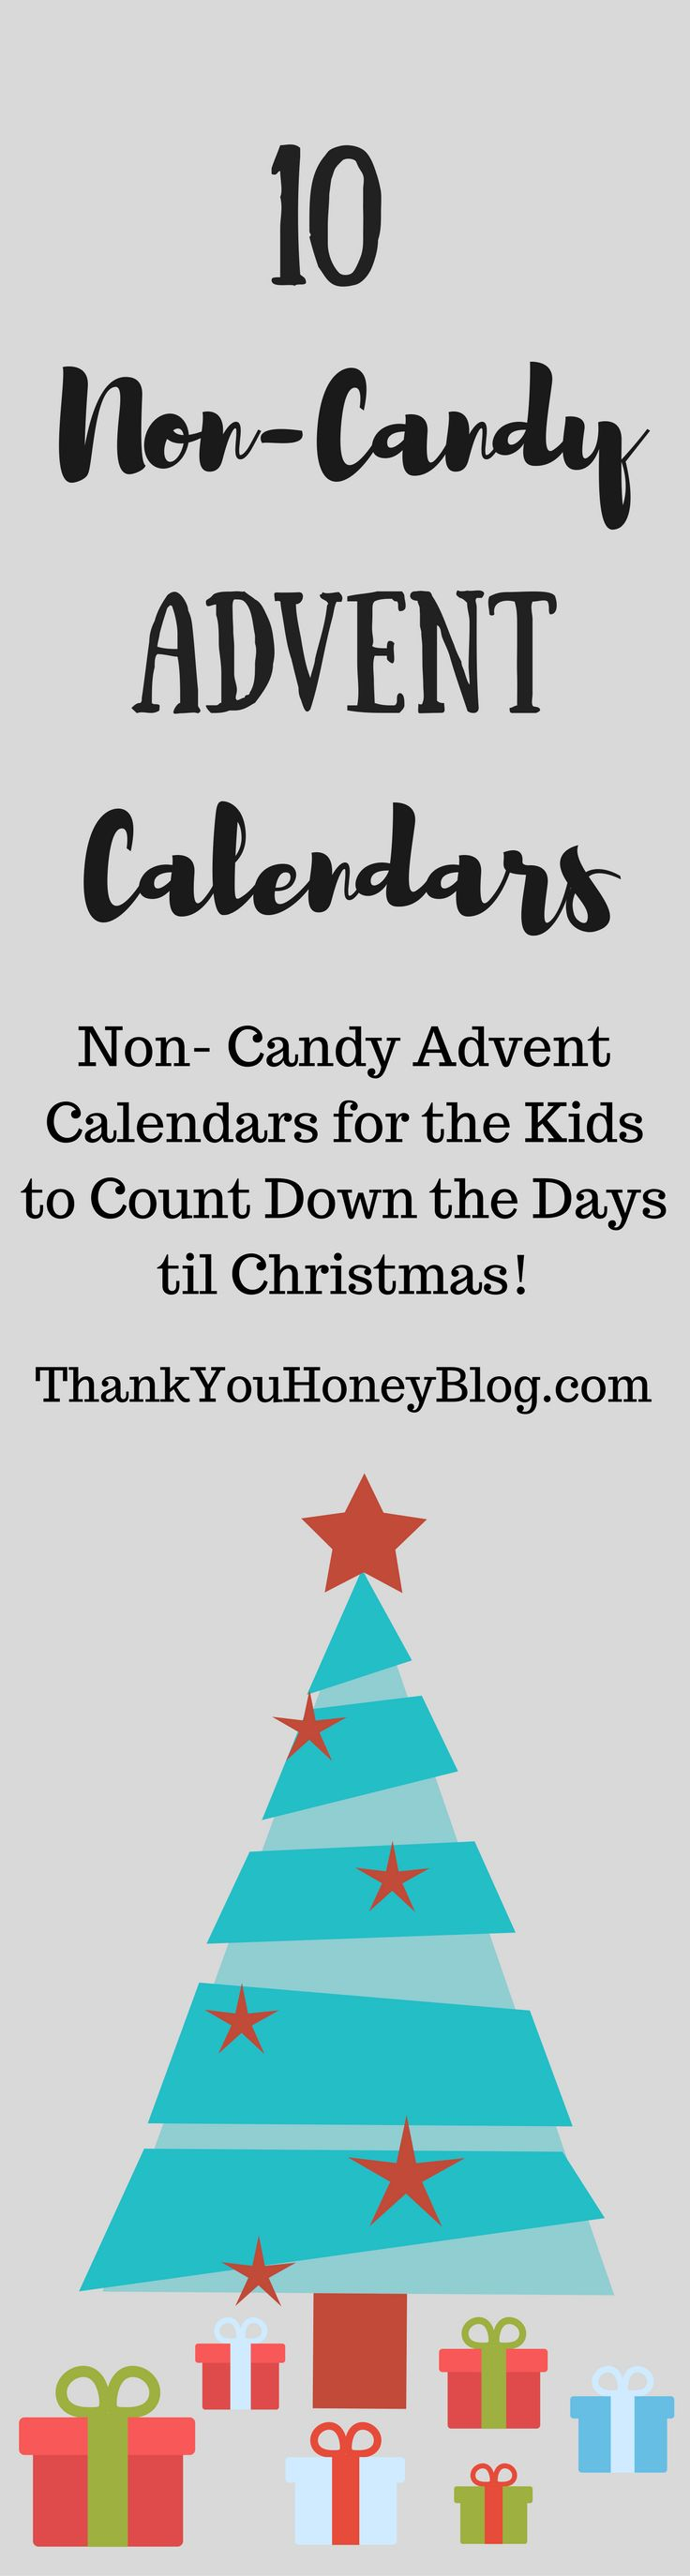 296 best Gifts images on Pinterest